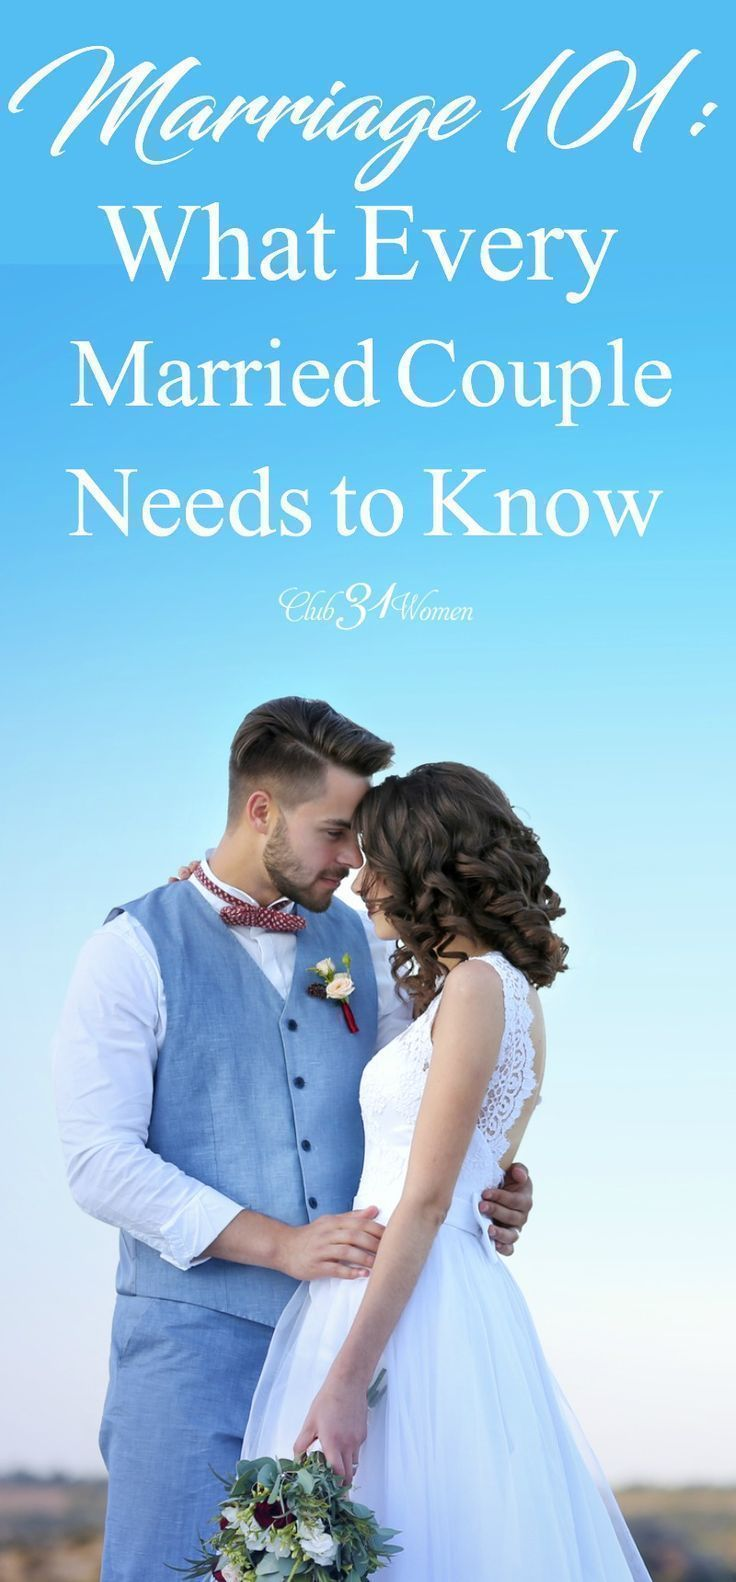 Marriage 101 what every married couple needs to know